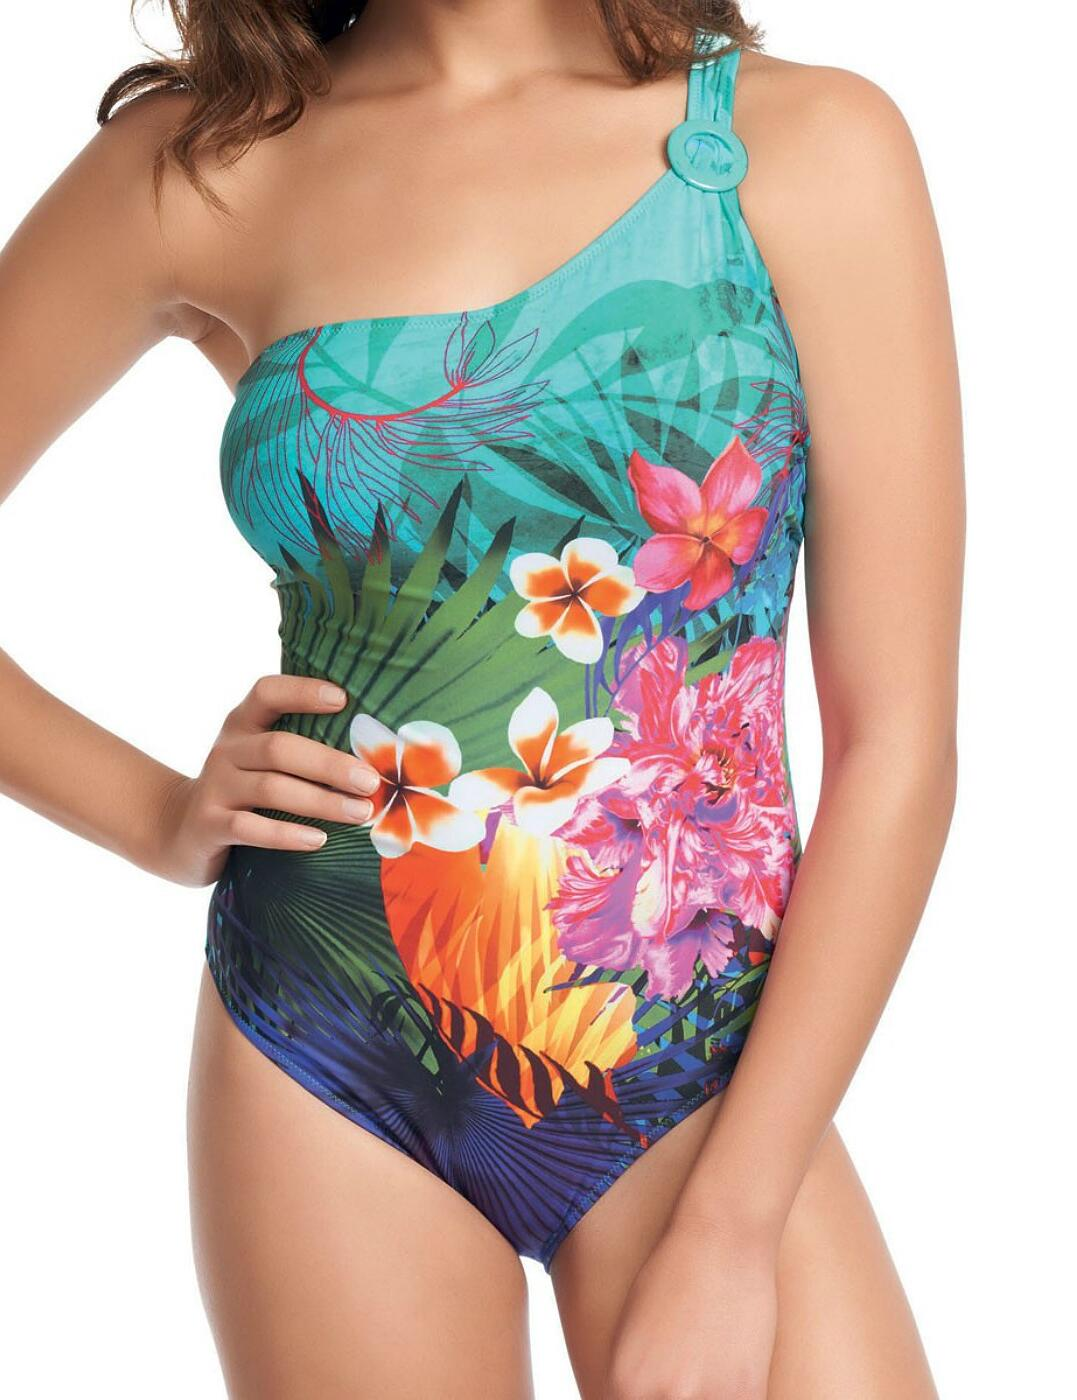 5966 Fantasie Dominica Underwired Asymmetric Swimsuit - 5966 Tropical Print